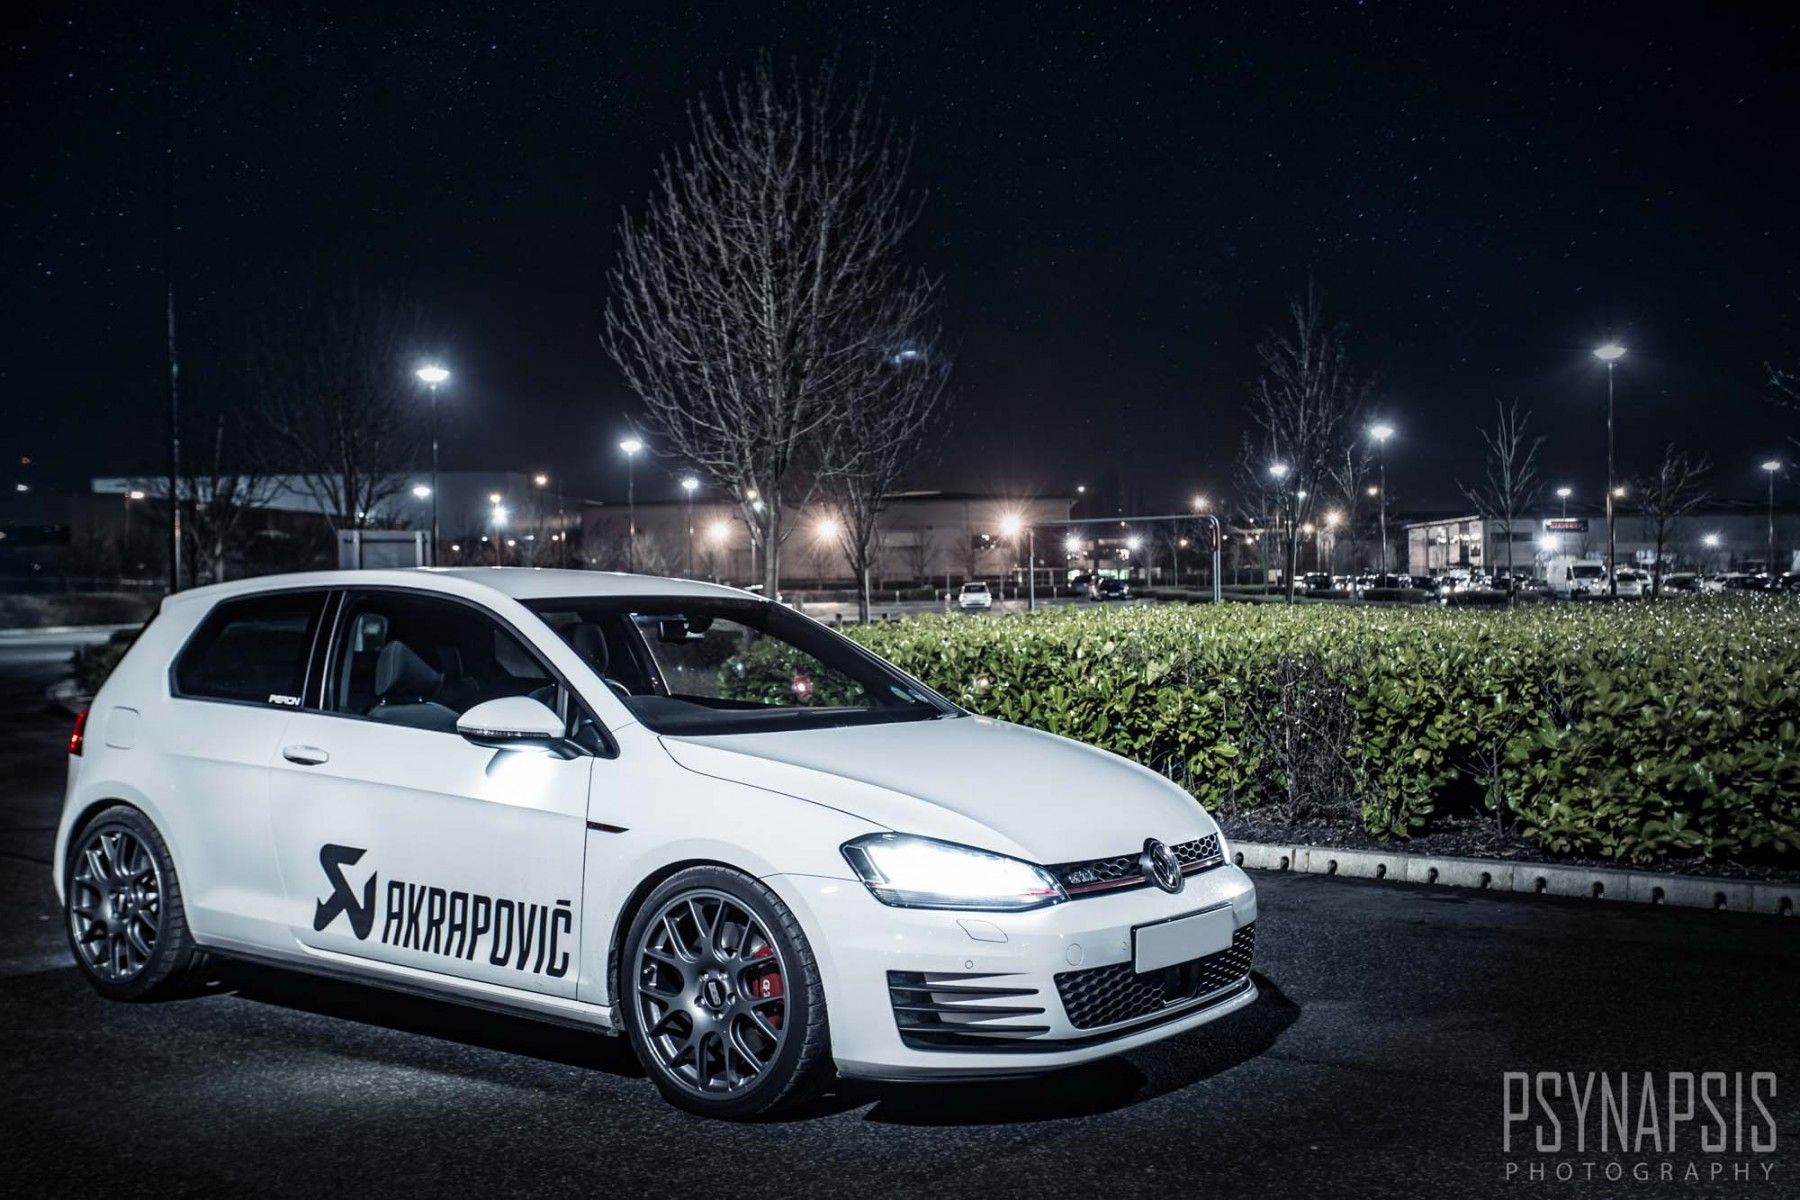 akrapovic golf mk7 gti volkswagen pinterest gti. Black Bedroom Furniture Sets. Home Design Ideas